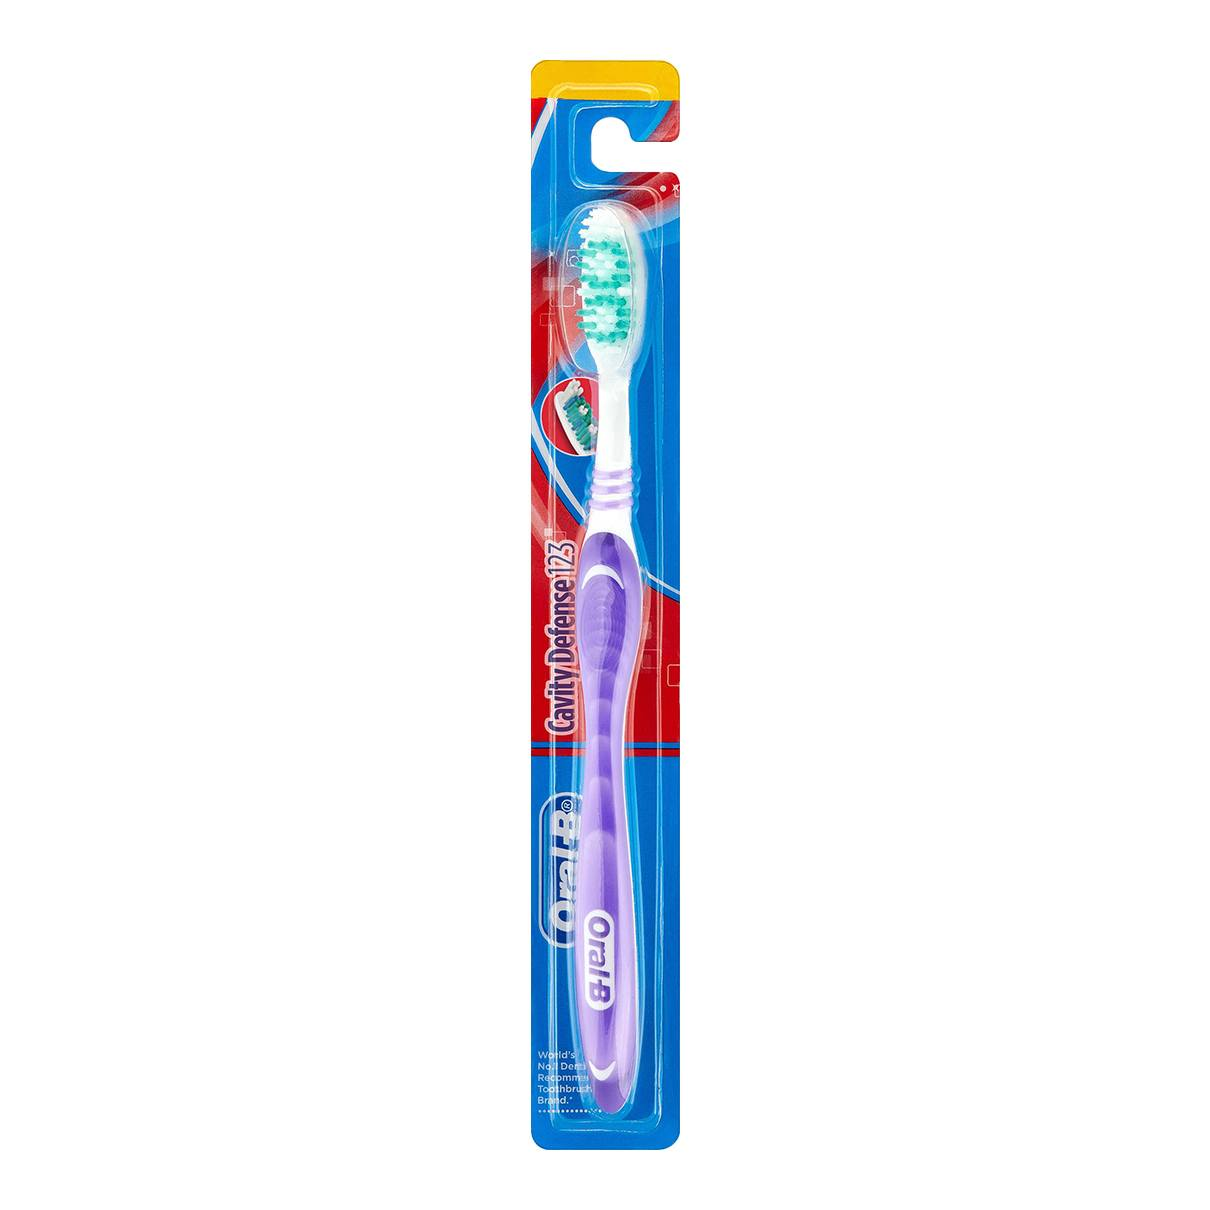 Oral-B Cavity Defense 123 toothbrush